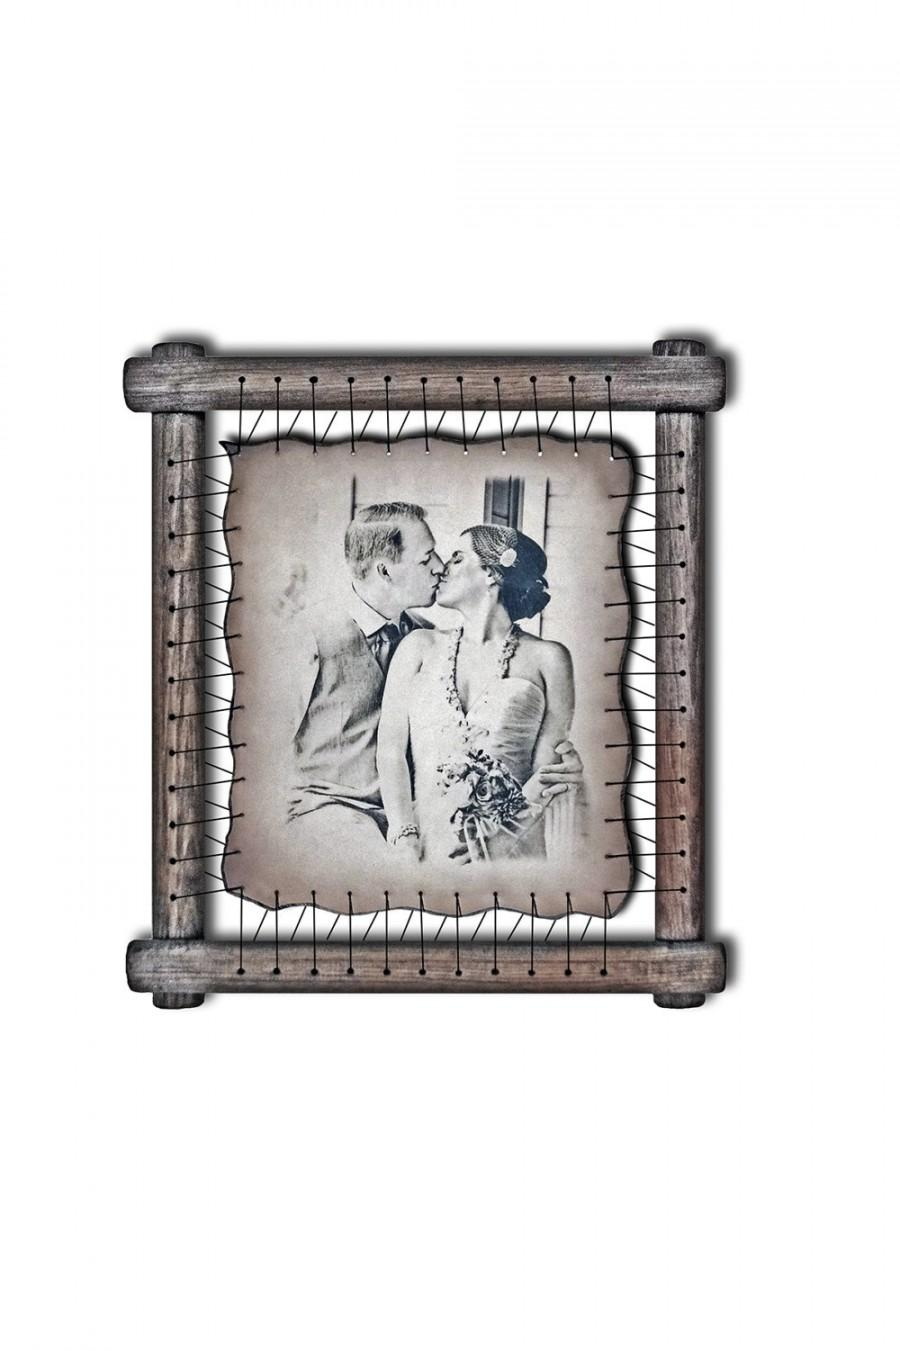 Leather Wedding Anniversary Gift Ideas For Her For Him For Husband